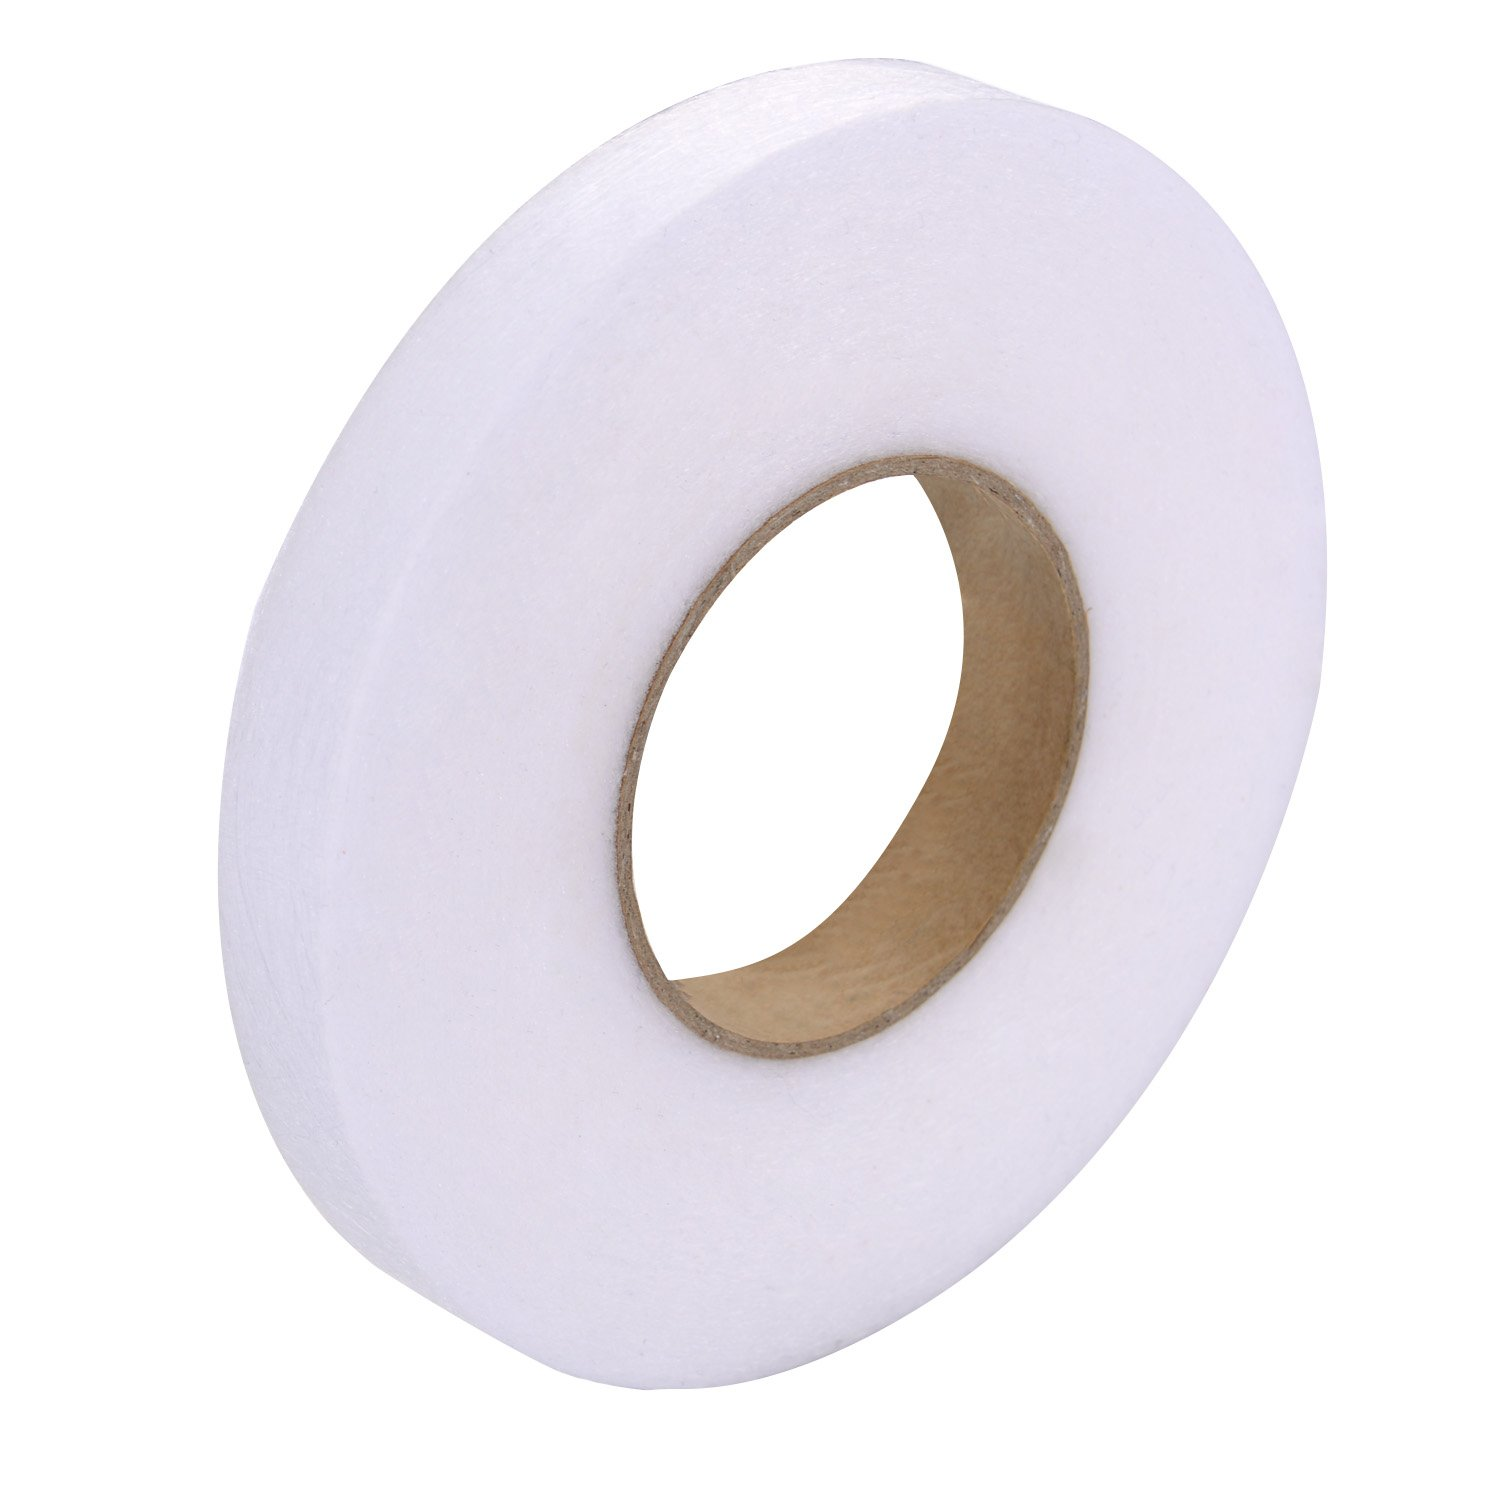 70 Yards Iron On Hem Tape Fabric Fusing Hemming Tape No Sew Hem Tape Roll for Jeans Trousers Garment Clothes (15 mm Wide) Outus